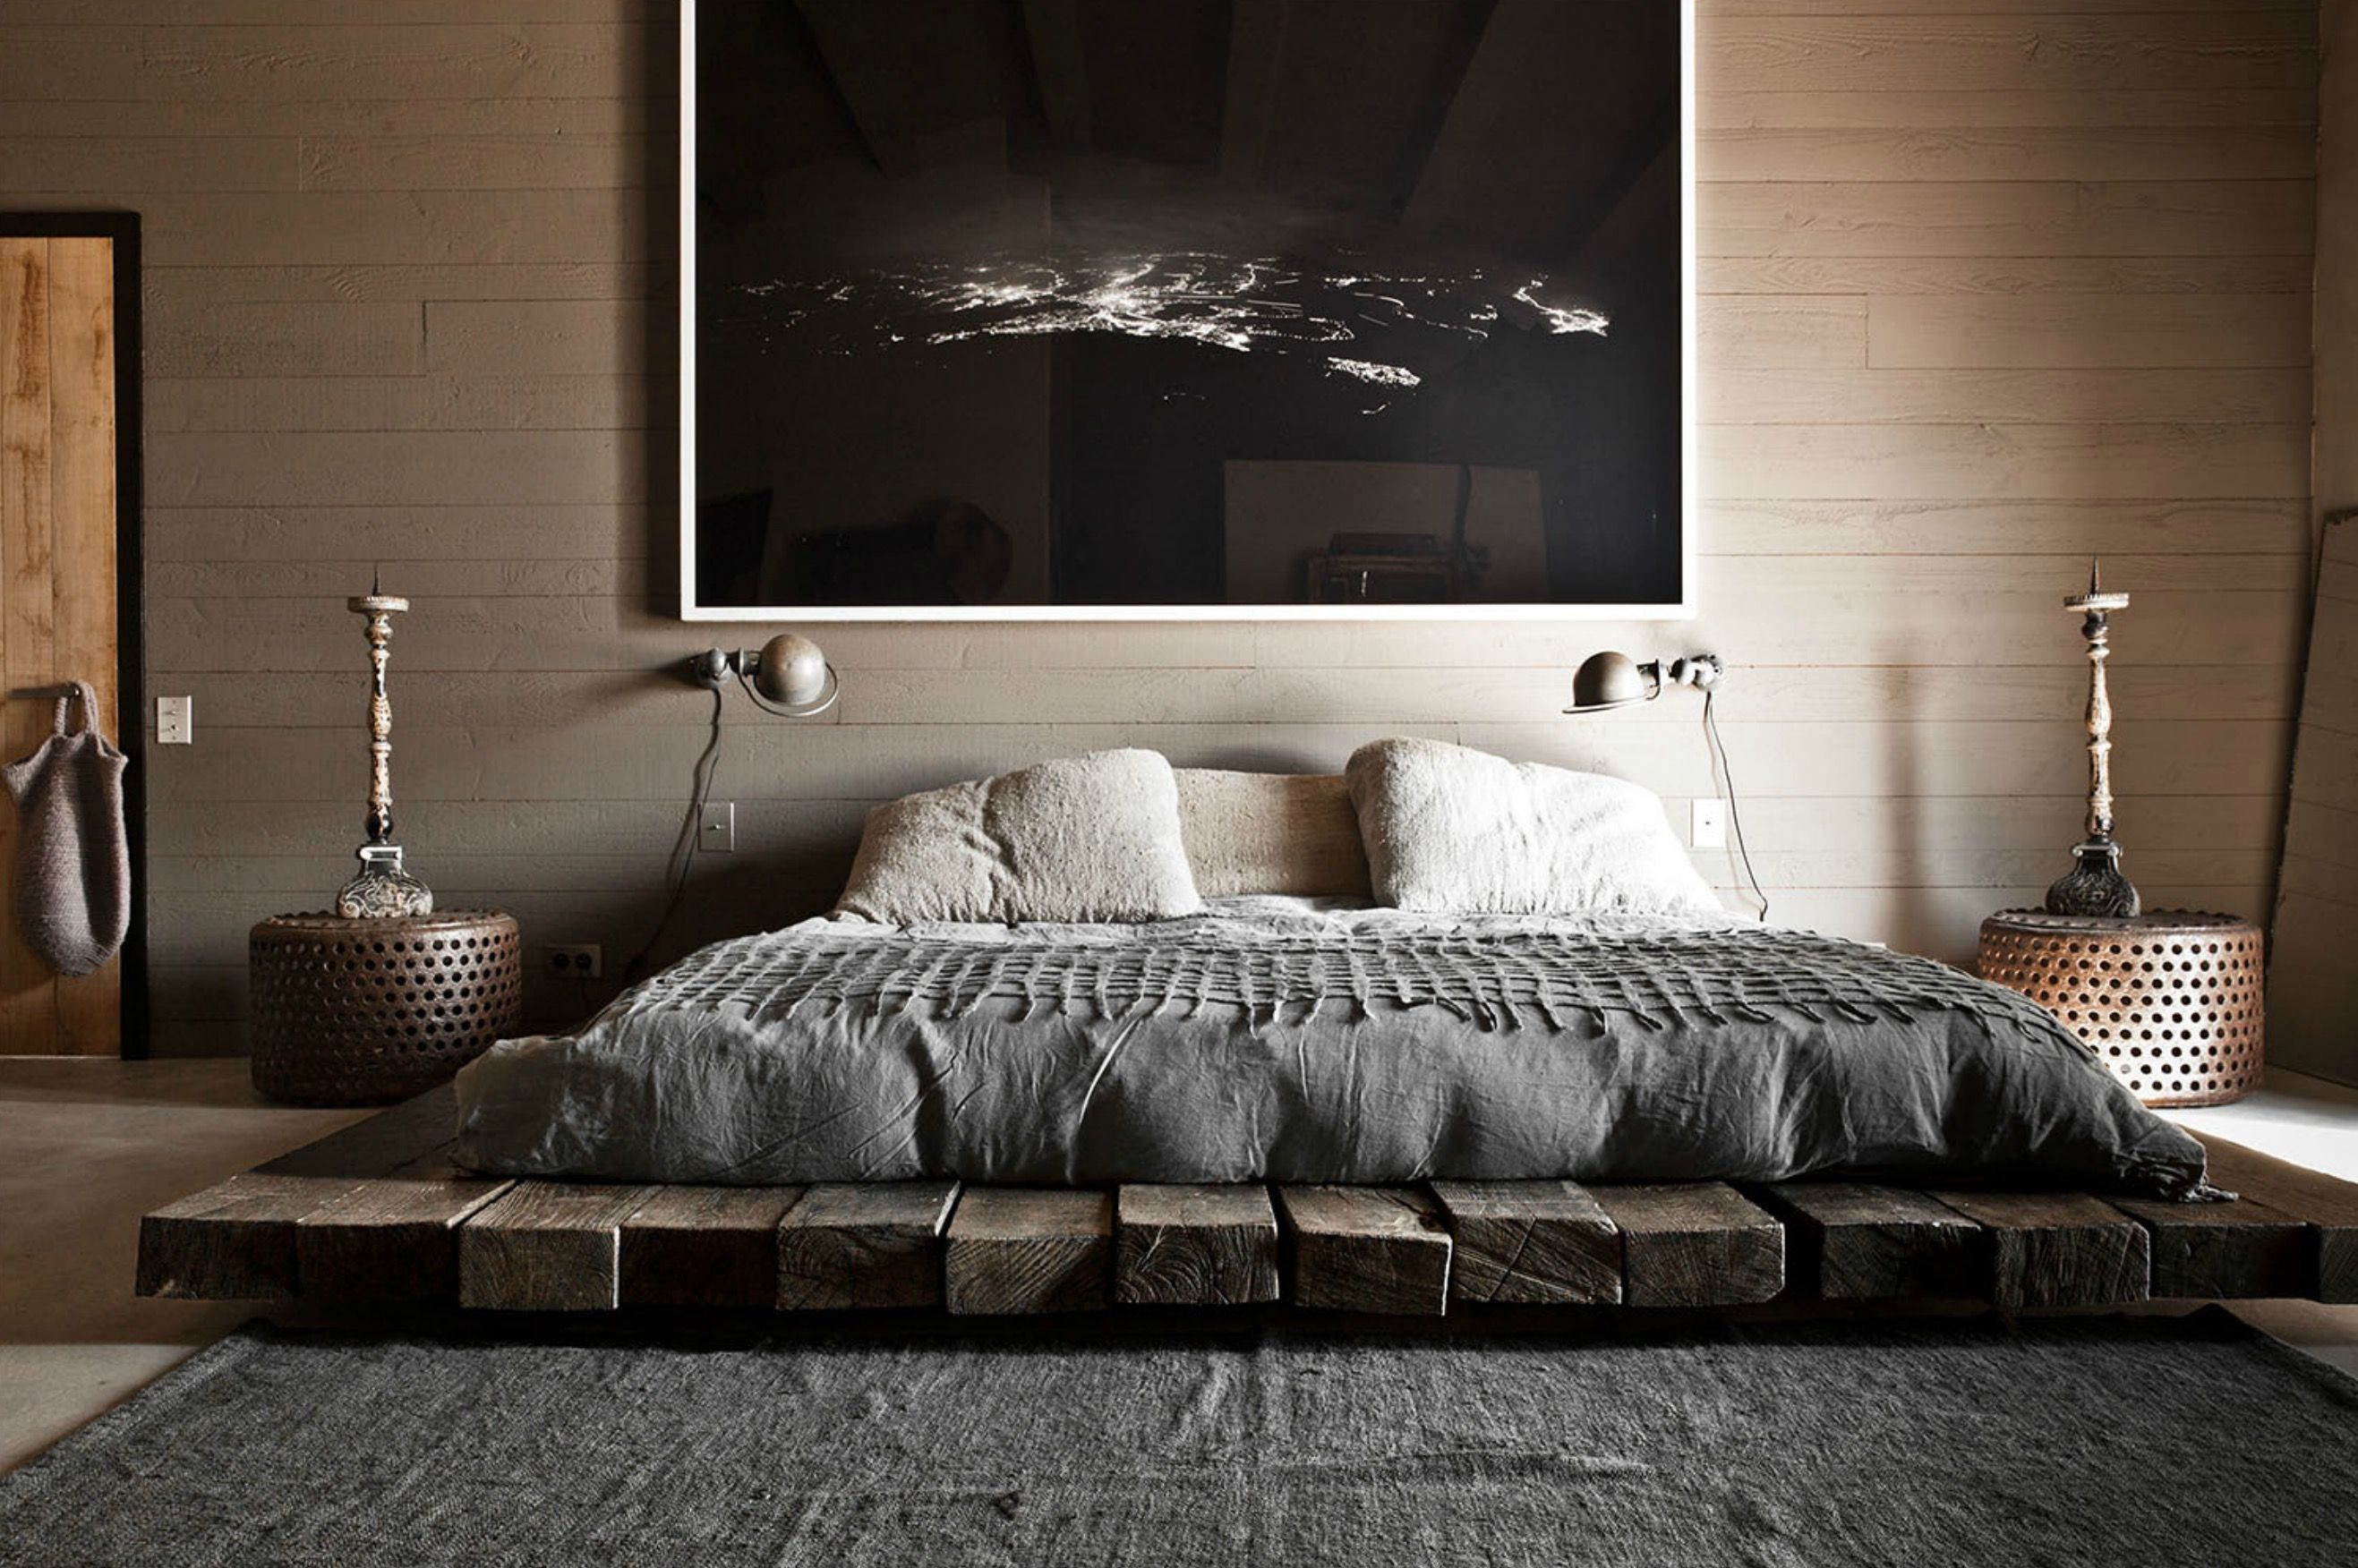 Bedroom Flooring Ideas Pinterest 40 Low Height And Floor Bed Designs That Will Make You